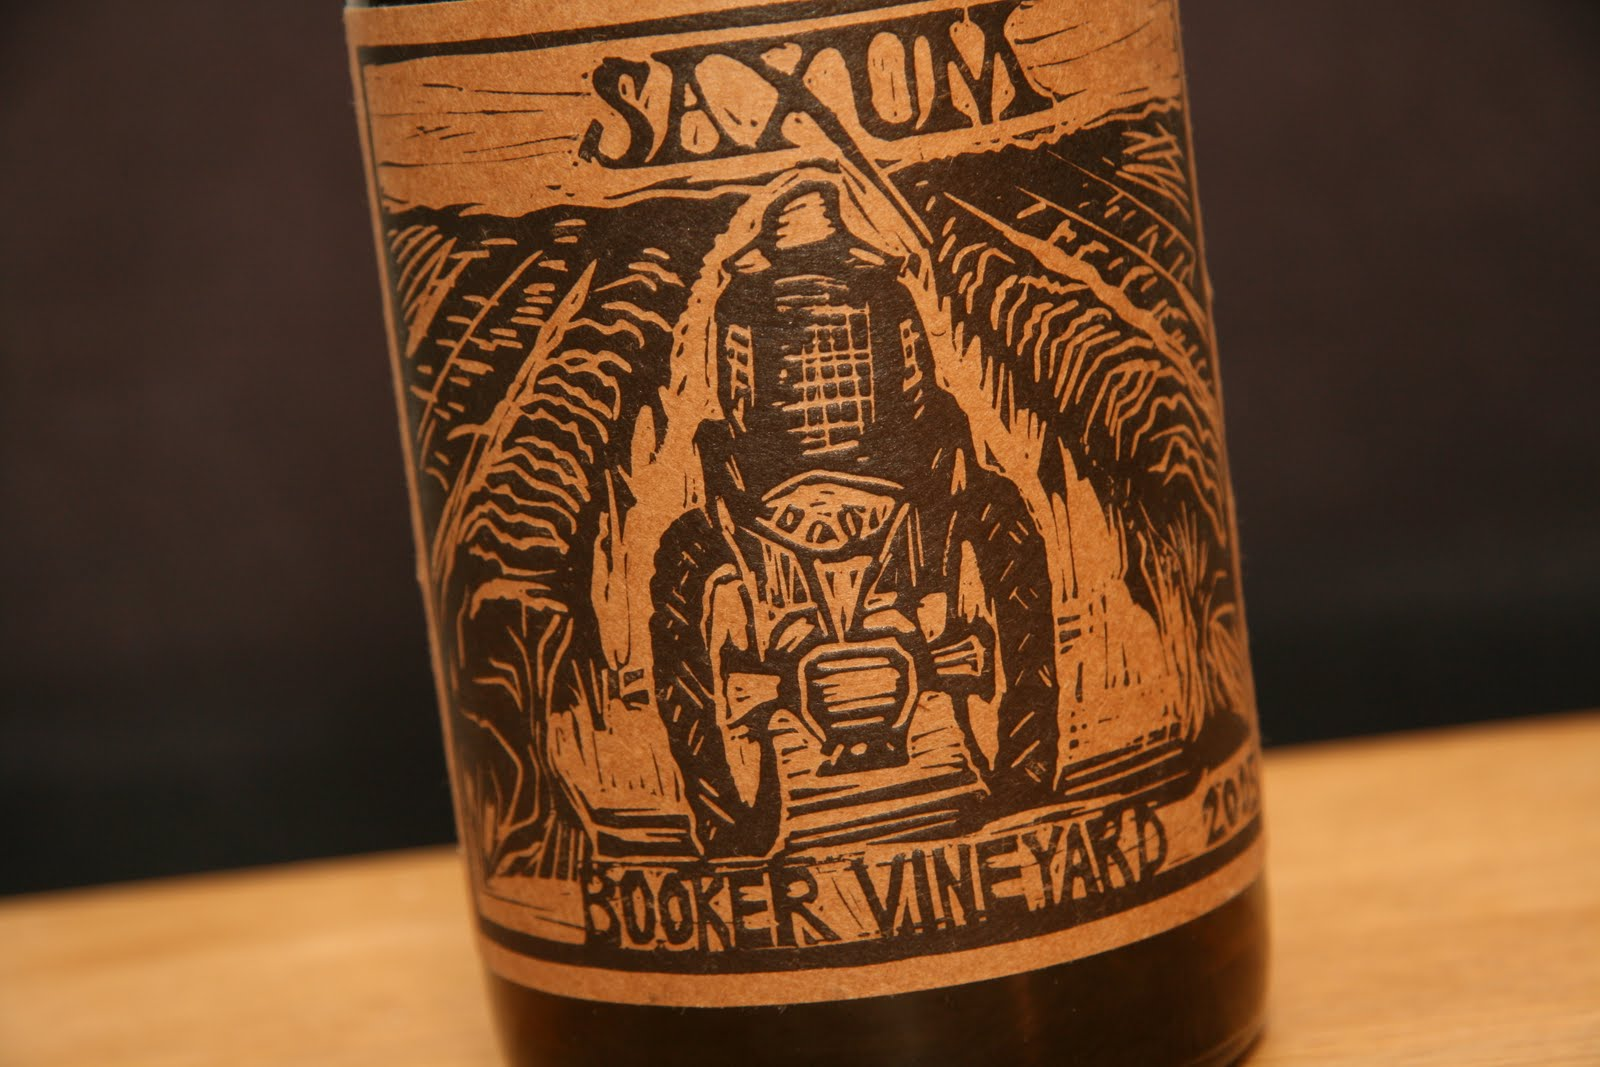 Justin Smith is a star. Many growers and winemakers in Paso Robles admire him and honor him for working so hard and focused to reach the highest quality. & California Wine Report: 2005 Booker Vineyard of Saxum